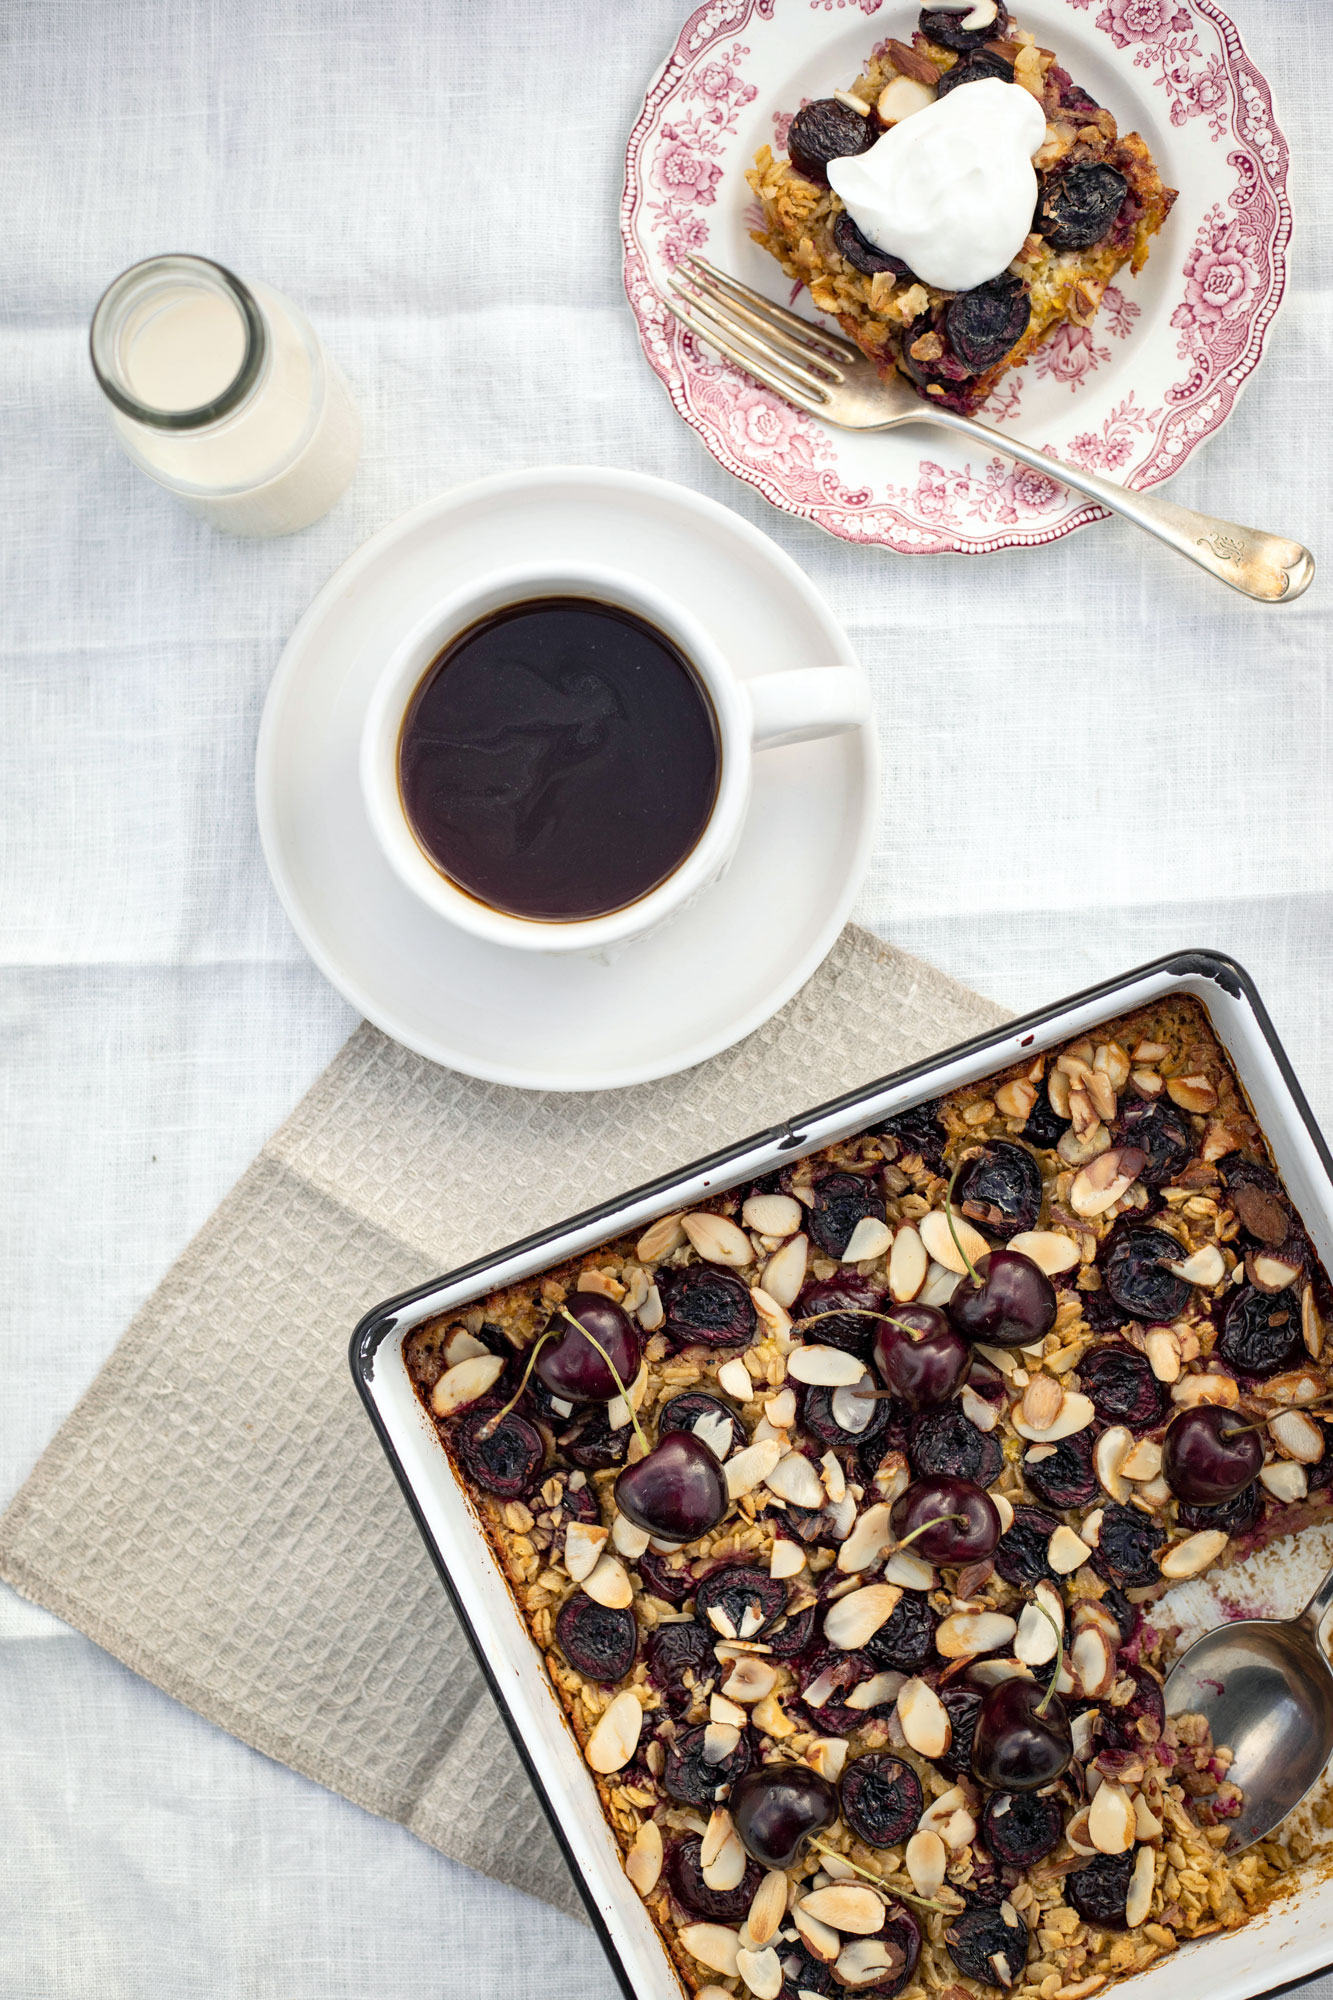 cherry and almond baked oatmeal for a healthy, gluten-free breakfast